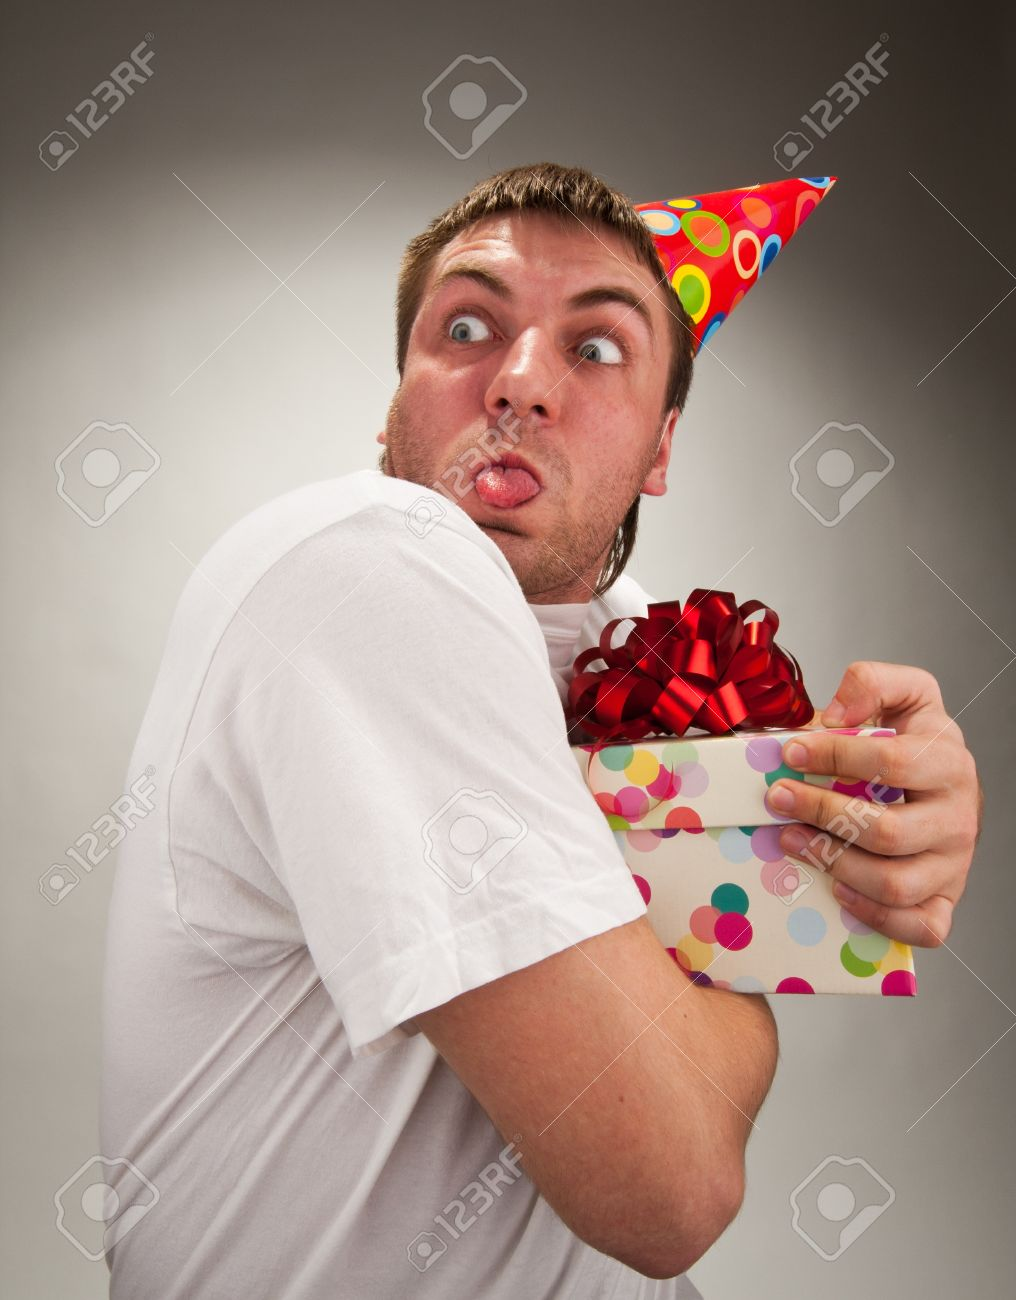 Funny birthday man with gift making face stock photo picture and funny birthday man with gift making face stock photo 18397017 negle Choice Image